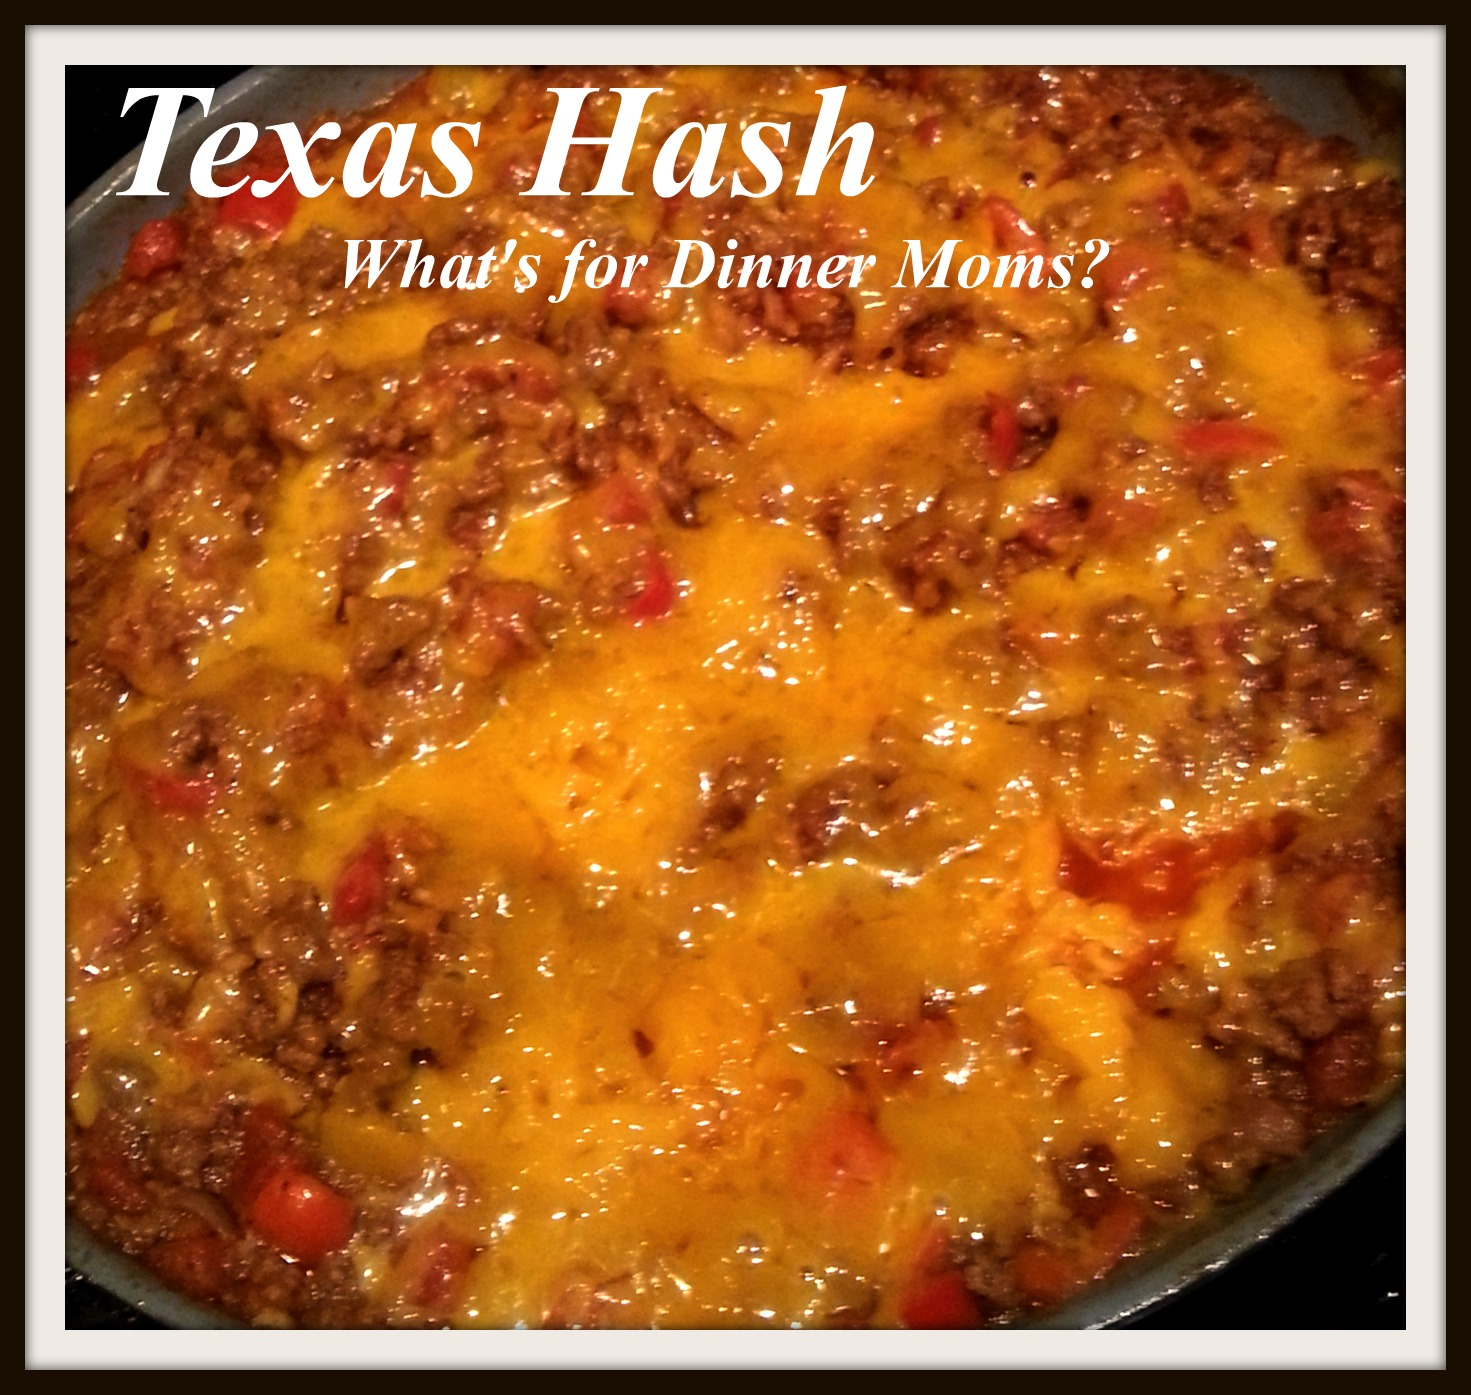 Texas Hash – What's for Dinner Moms?